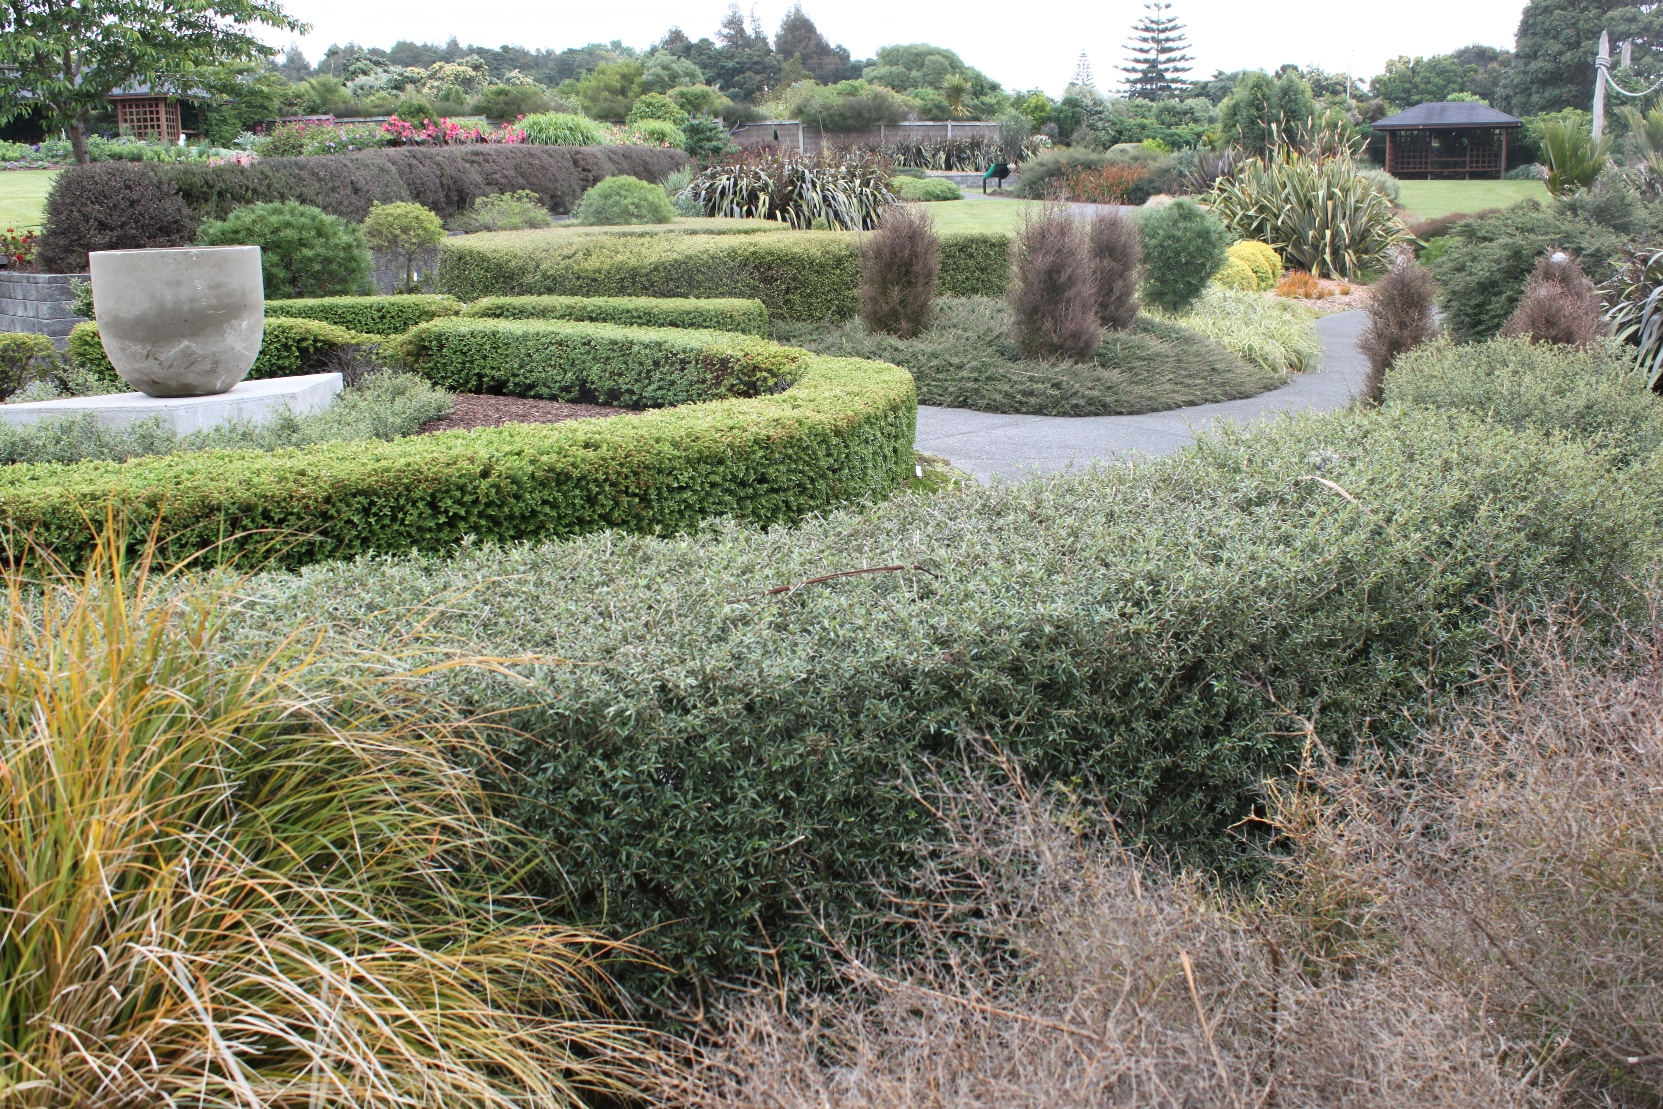 Native plant ideas auckland botanic gardens for New zealand garden designs ideas